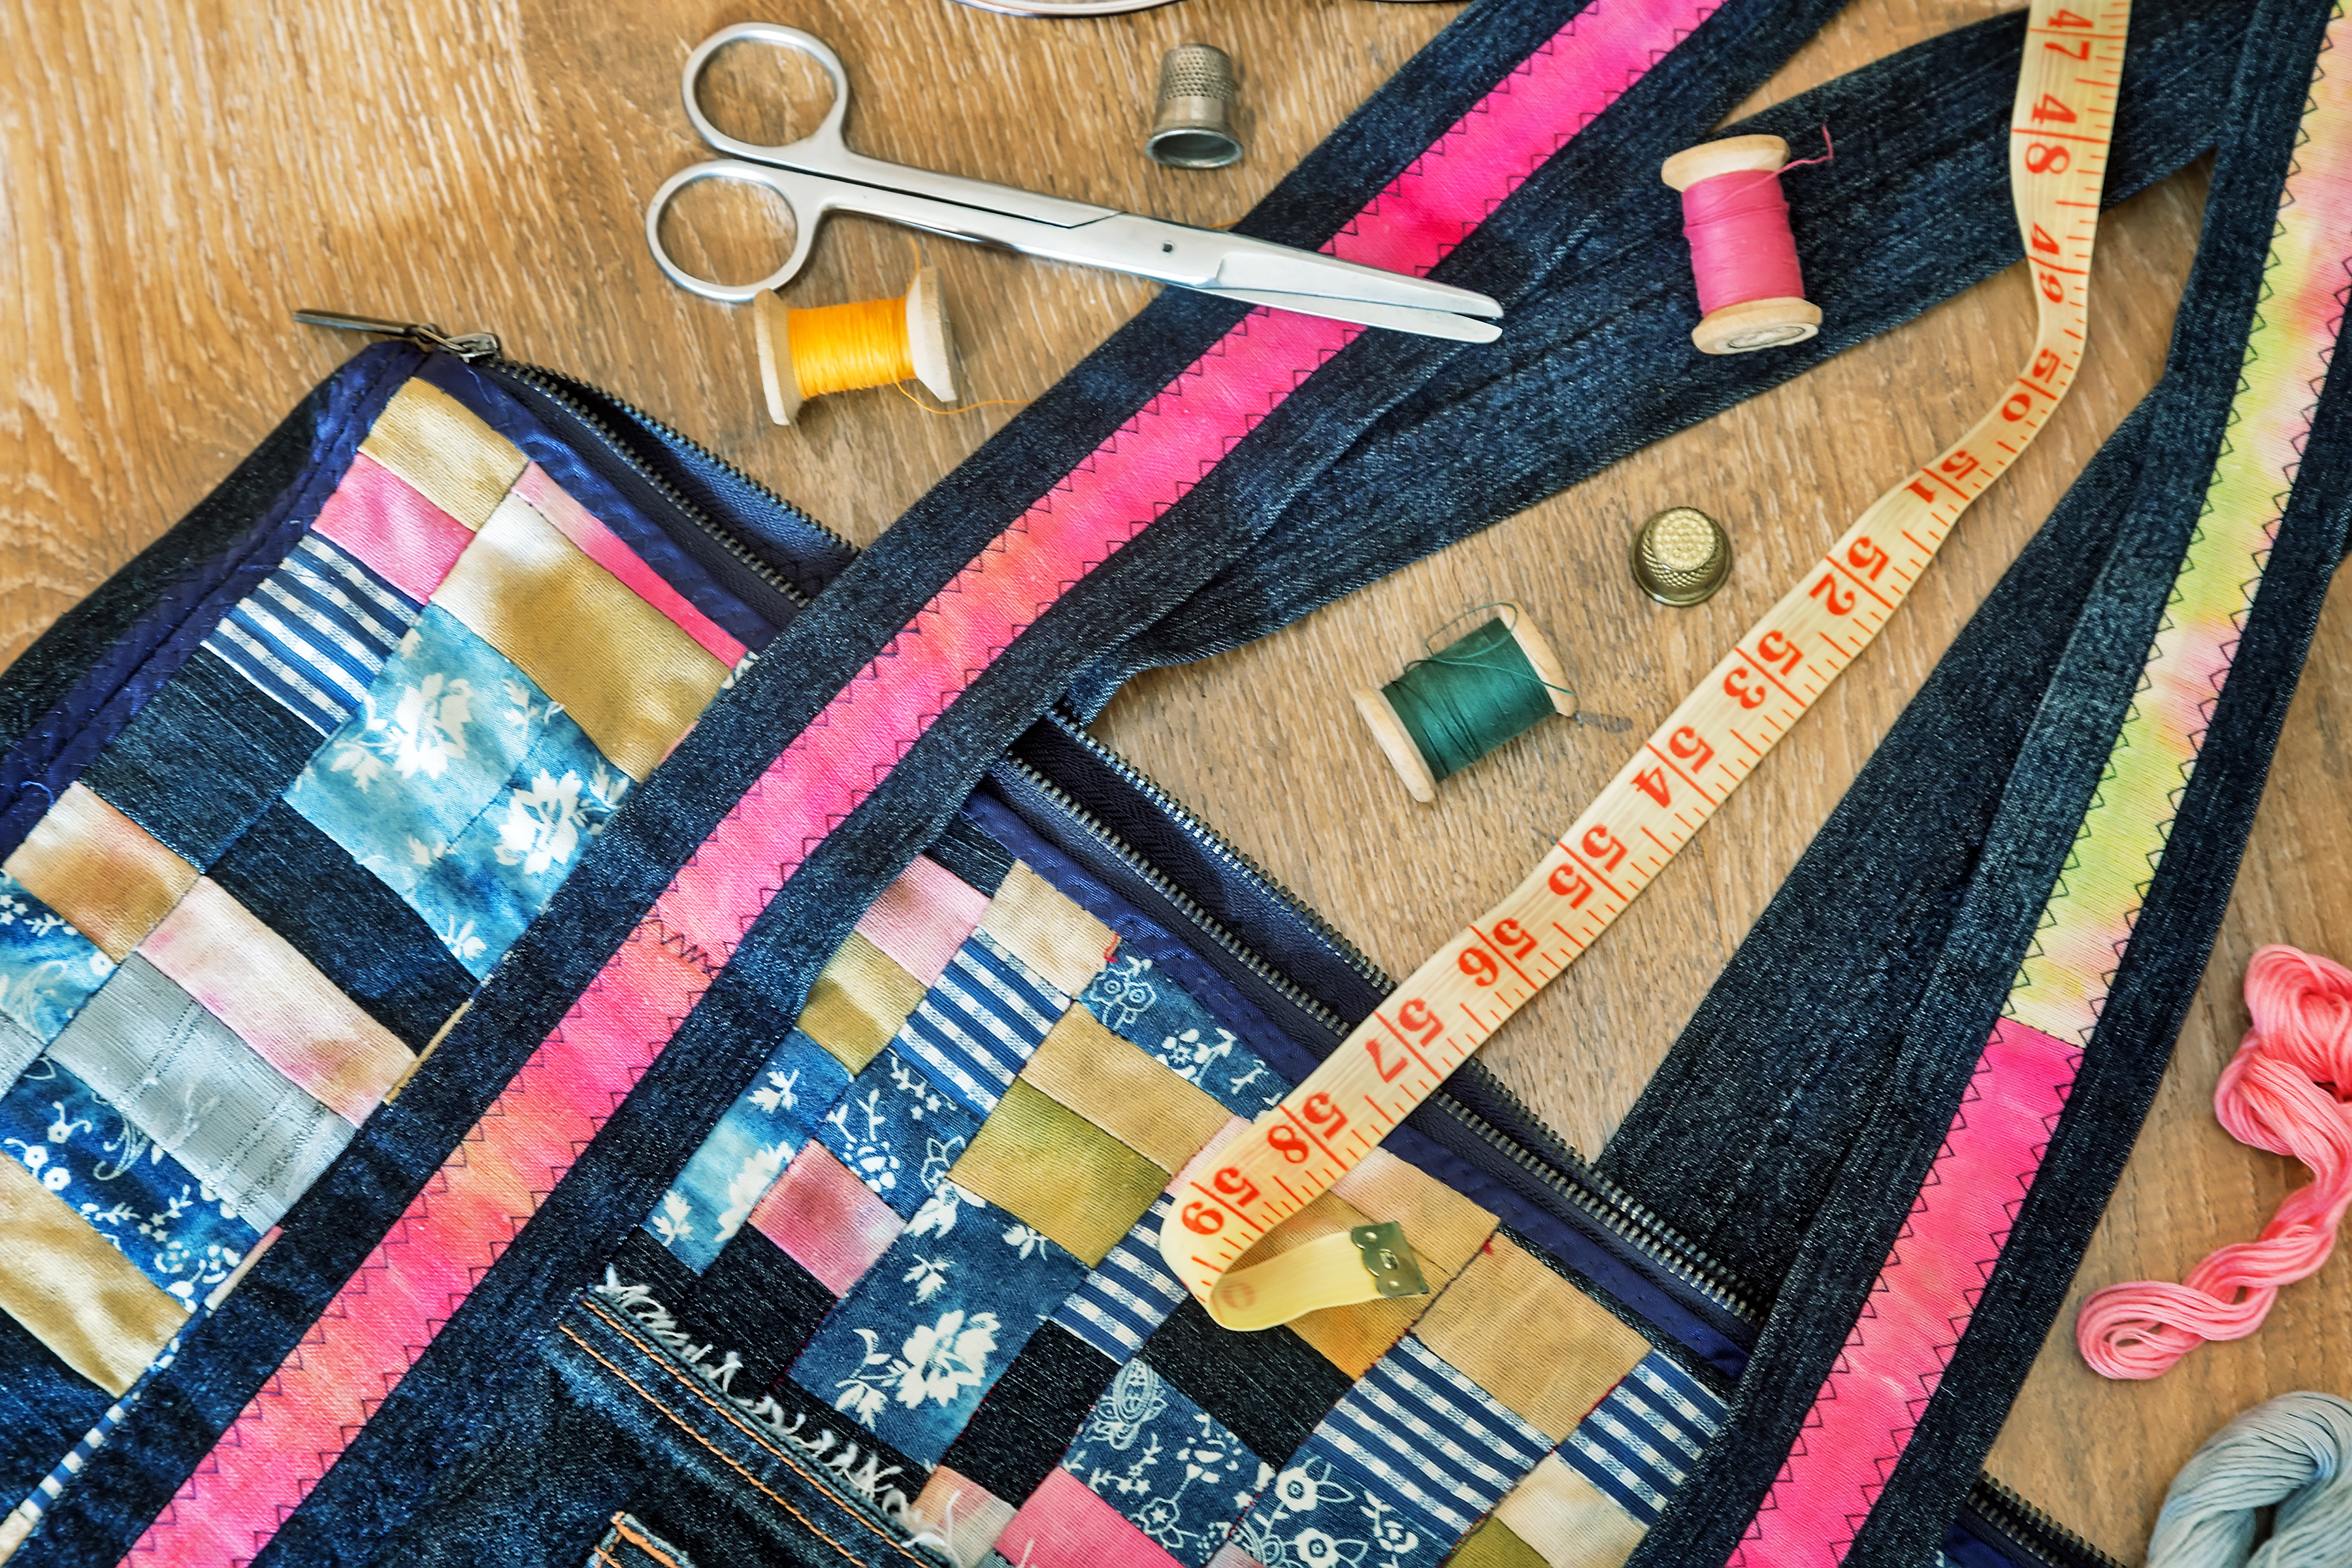 Beautiful female bag of colorful scraps of fabric in patchwork.jpg Handmade.jpg Next are the threads